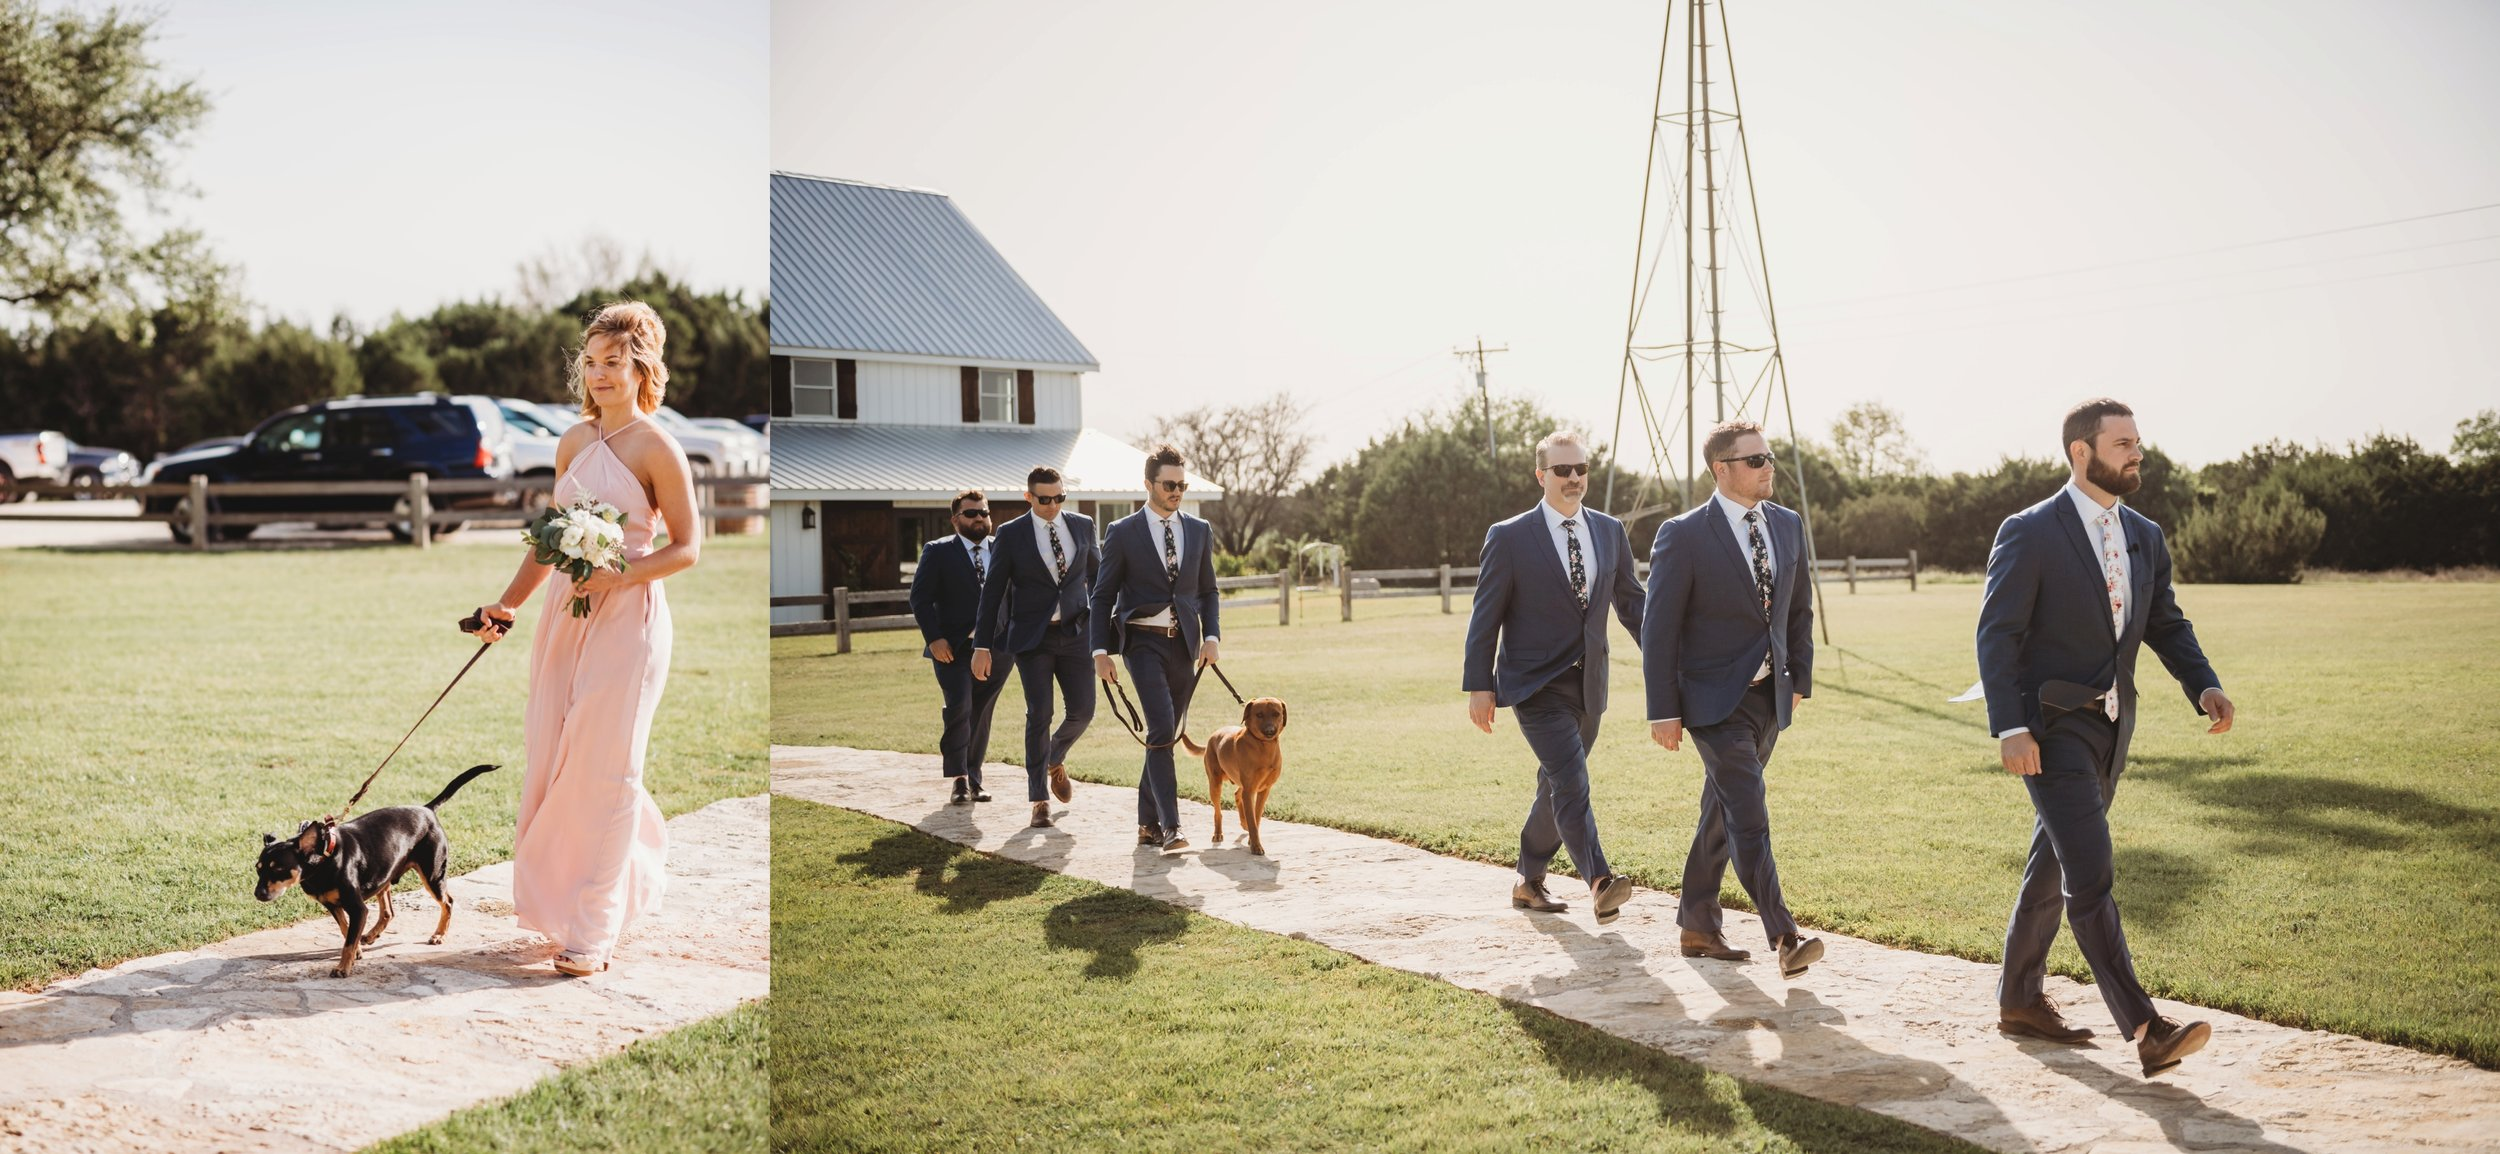 The-White-Fiore-Five-Oaks-Farm-Fort-Worth-Wedding-Planner-Ceremony_008.jpg